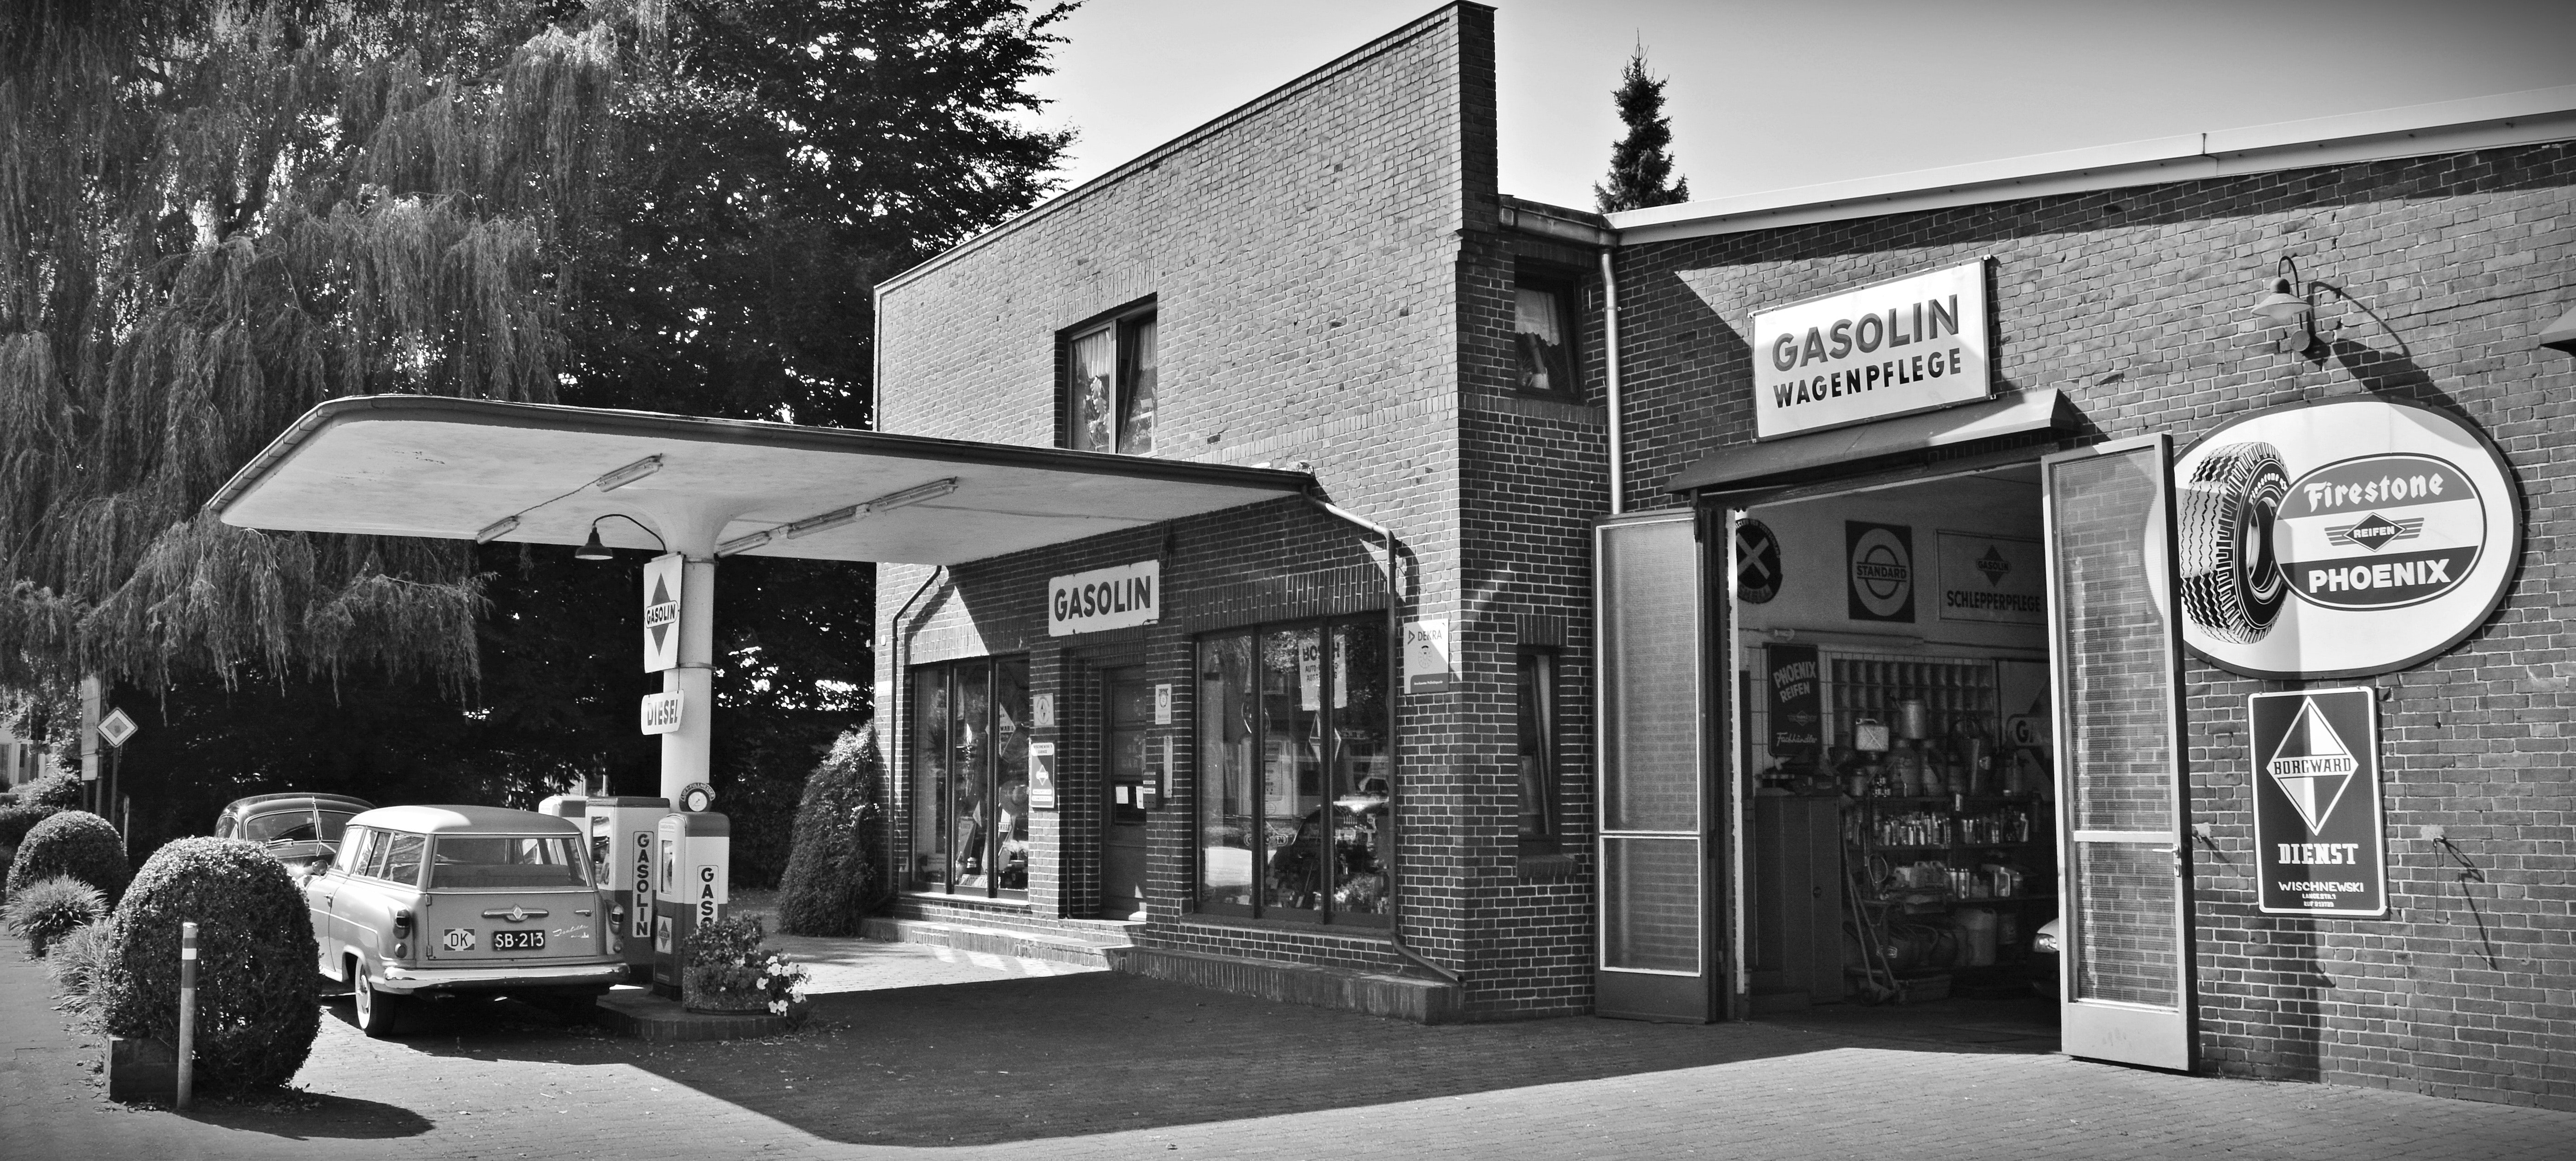 Gray scale photo of a sedan parked infront of store